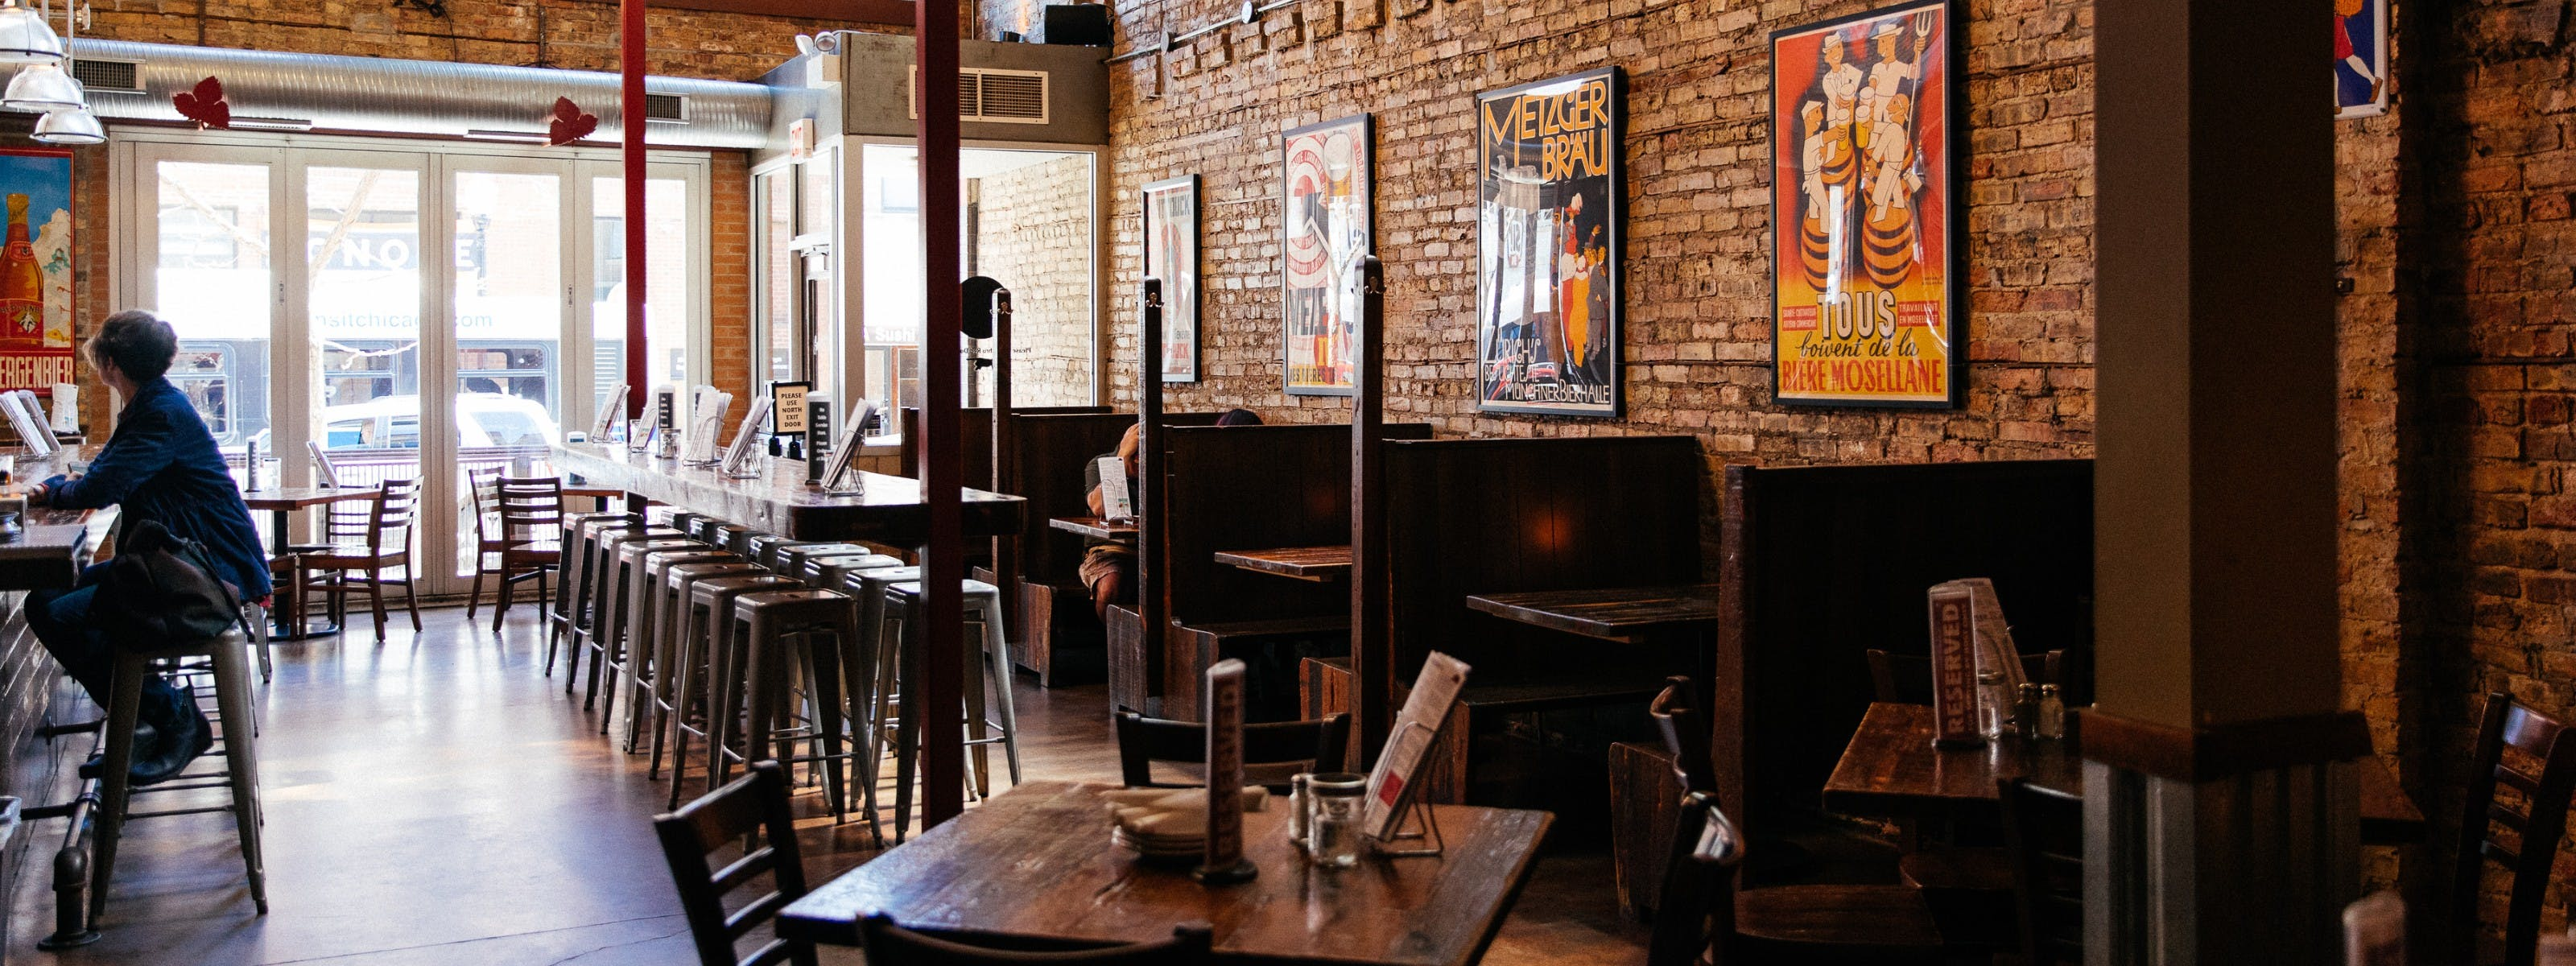 The Best First Date Restaurants In Chicago Chicago The Infatuation